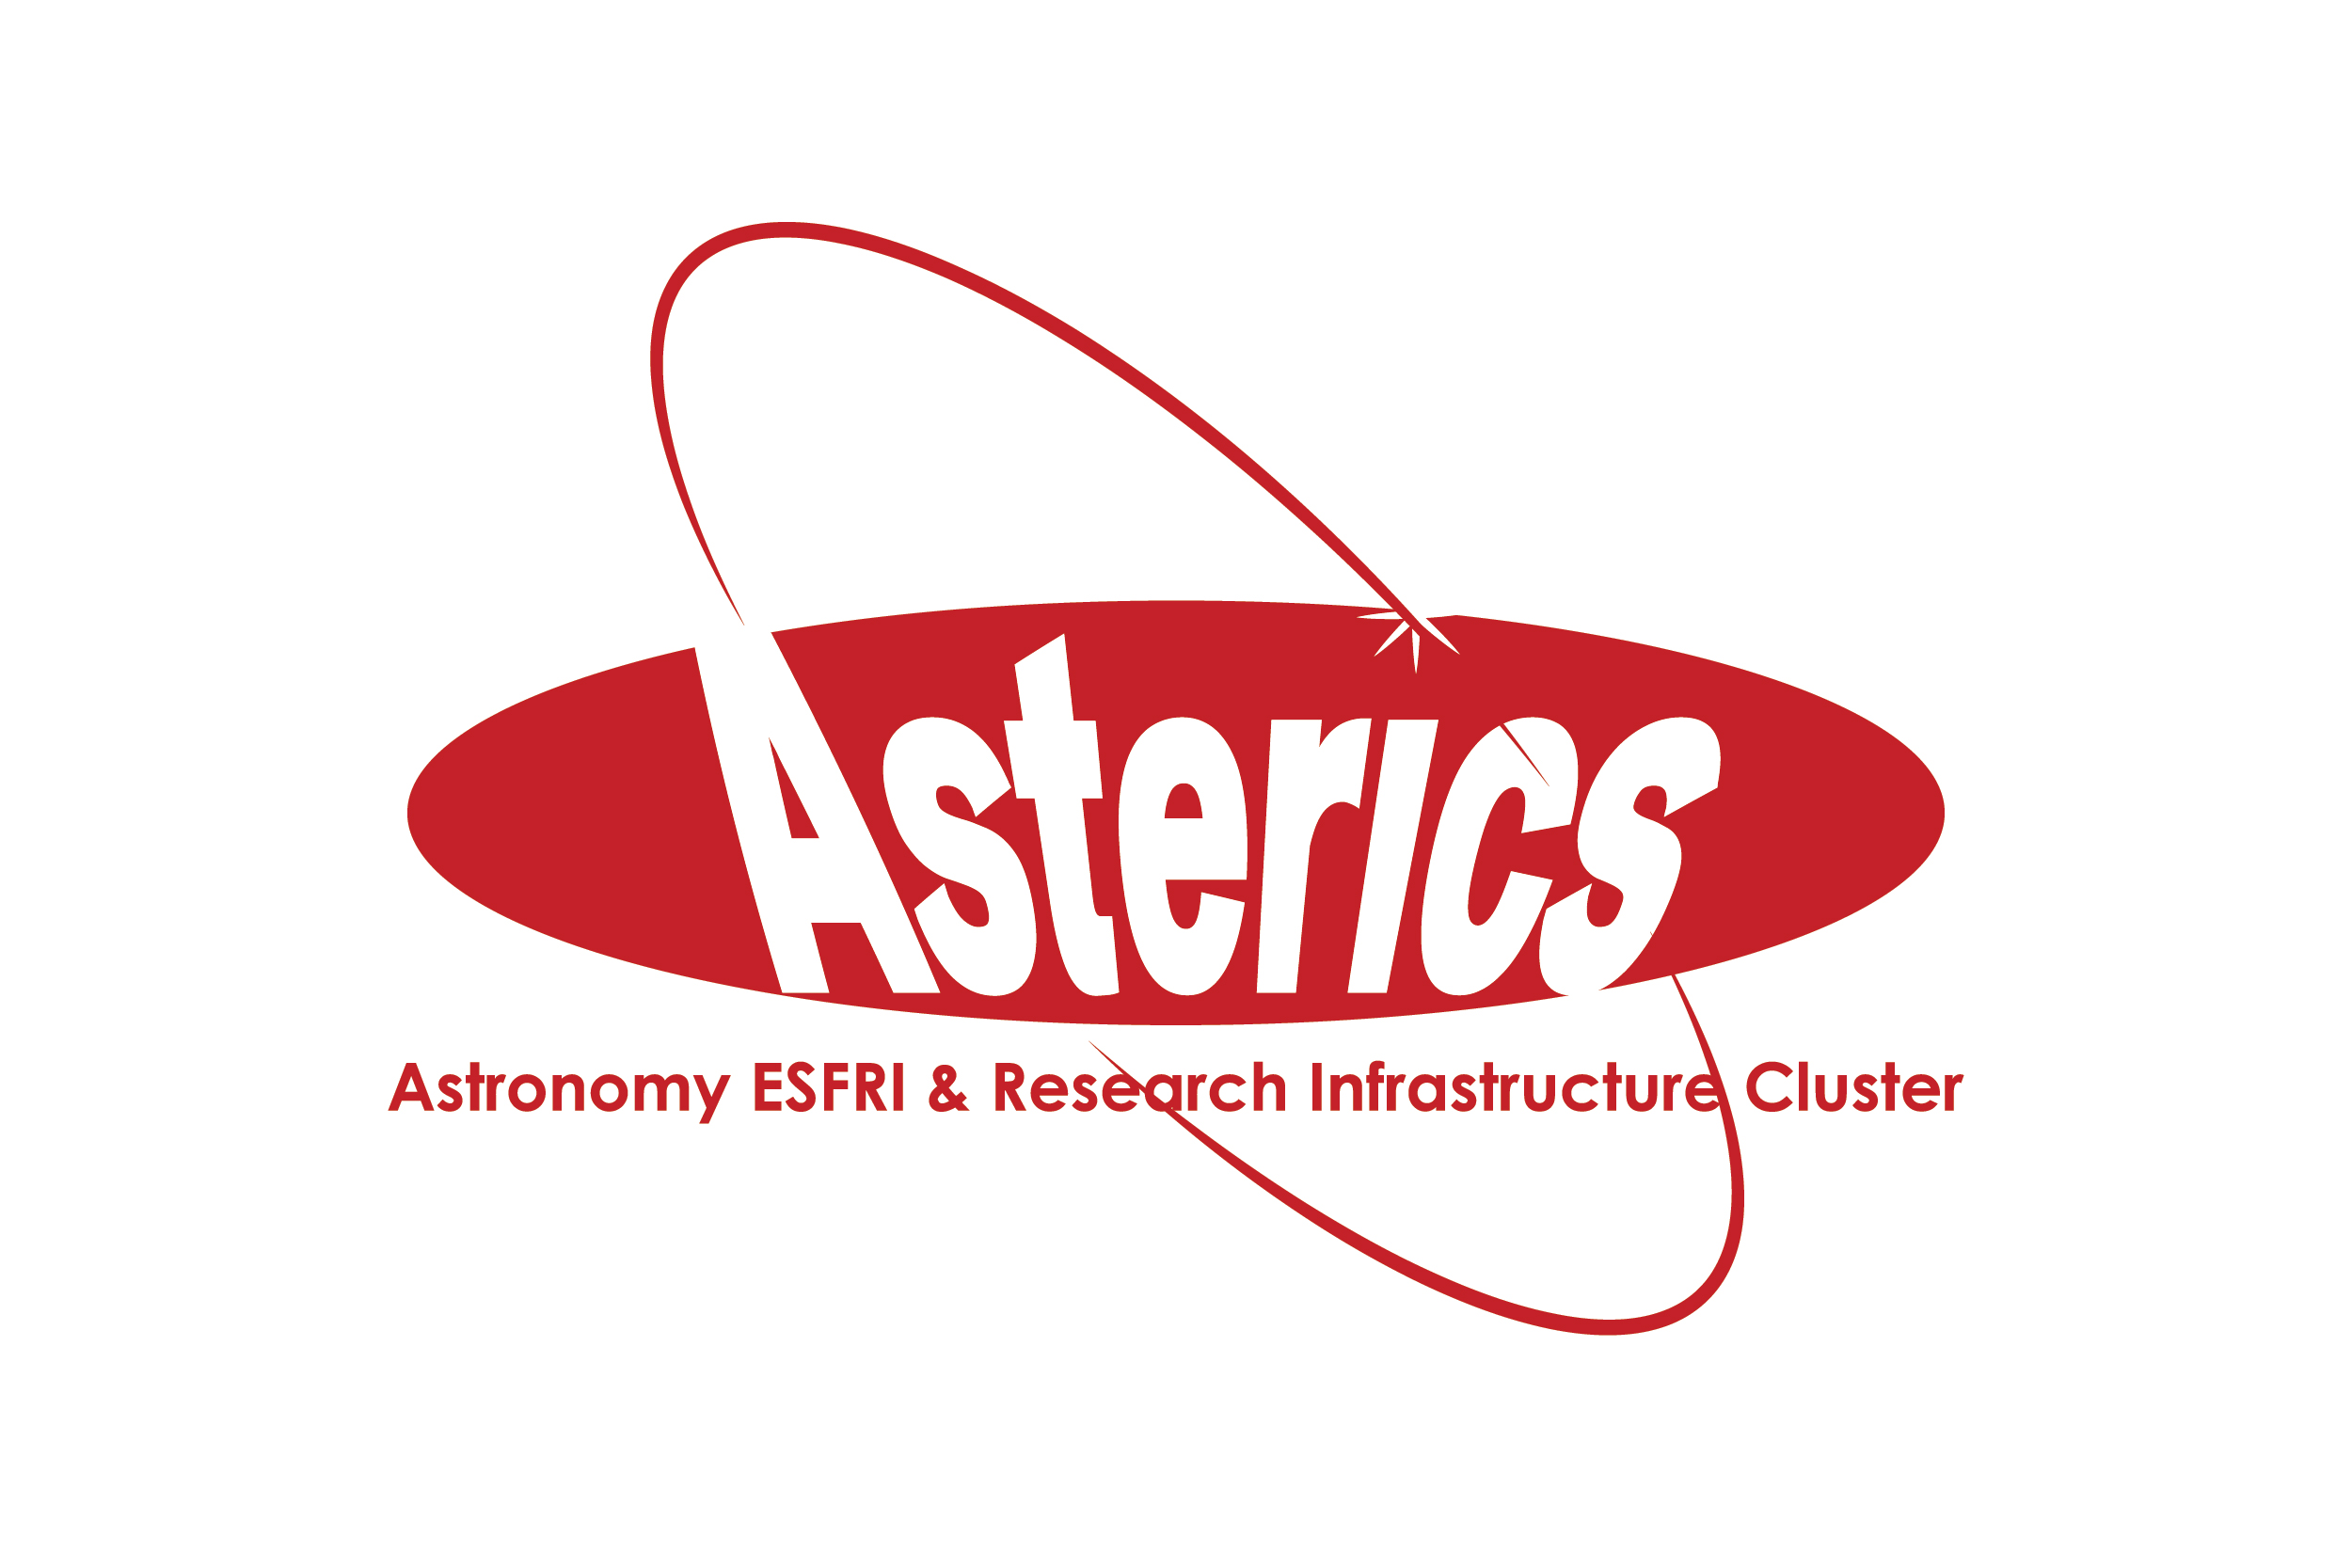 5th ASTERICS DADI Technology Forum  (Meeting of ASTERICS DADI partners) teaser image